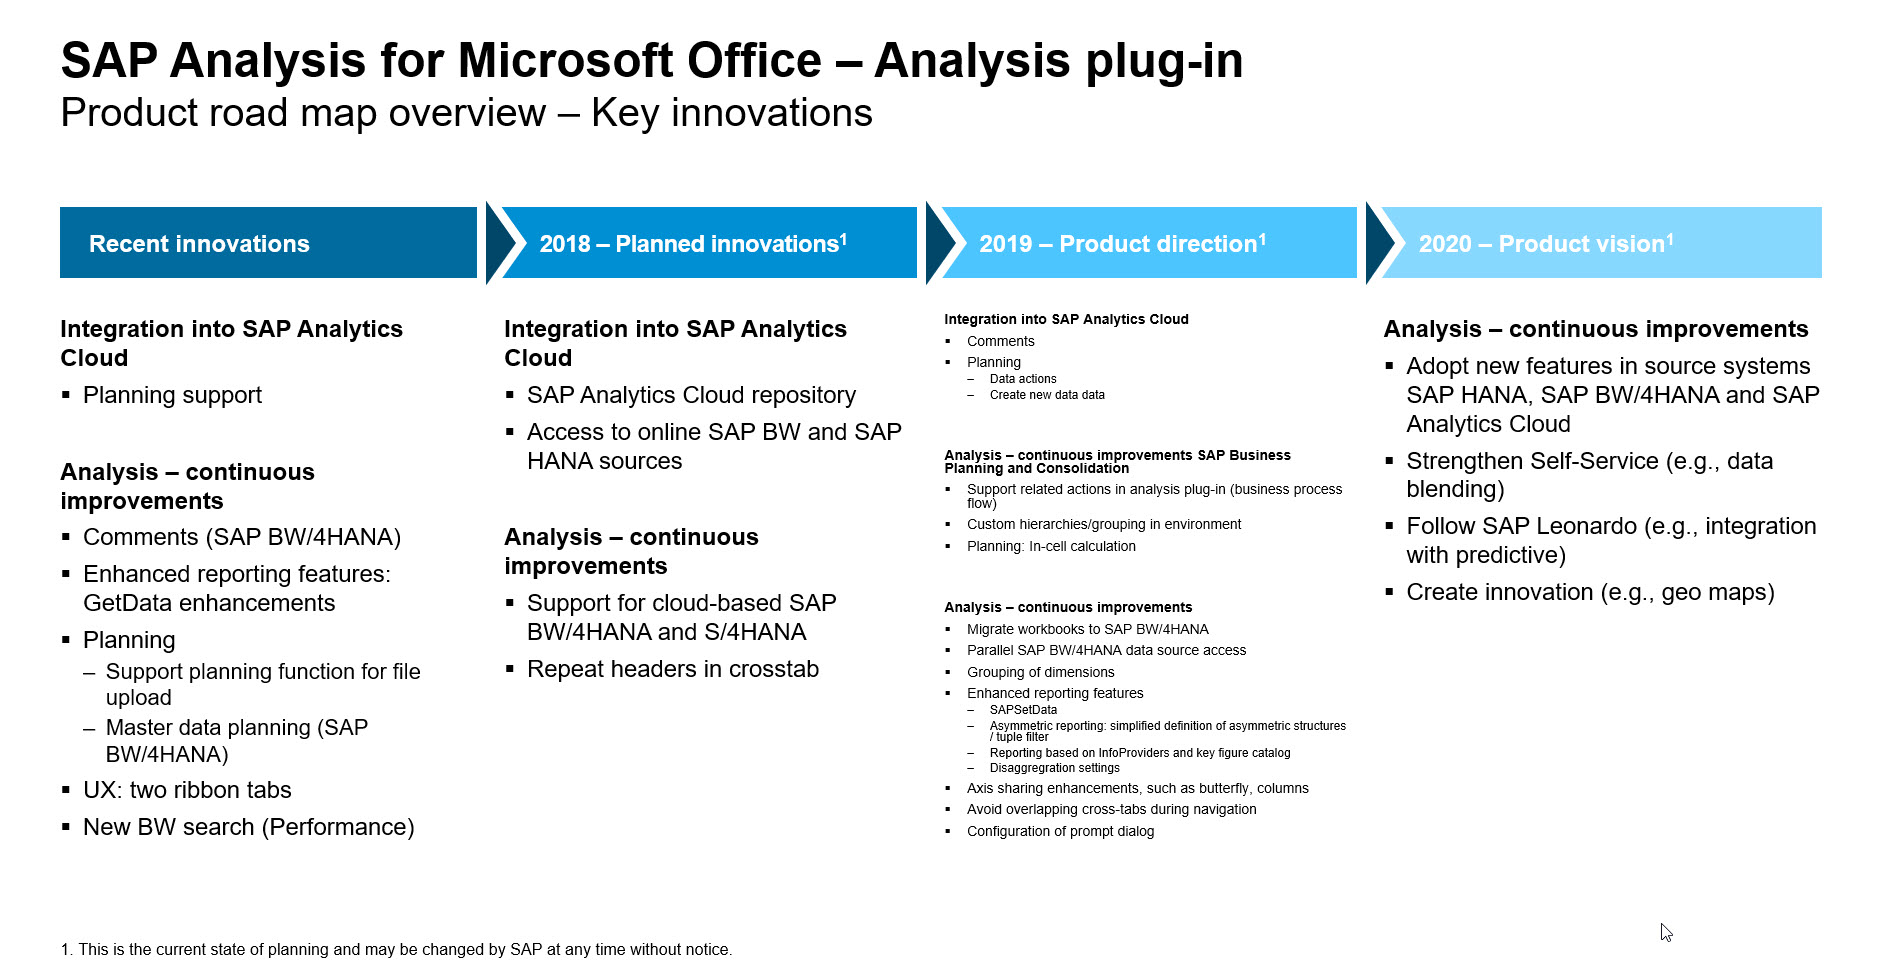 ASUG Analysis Influence Council – Make your voice heard + Brief Road